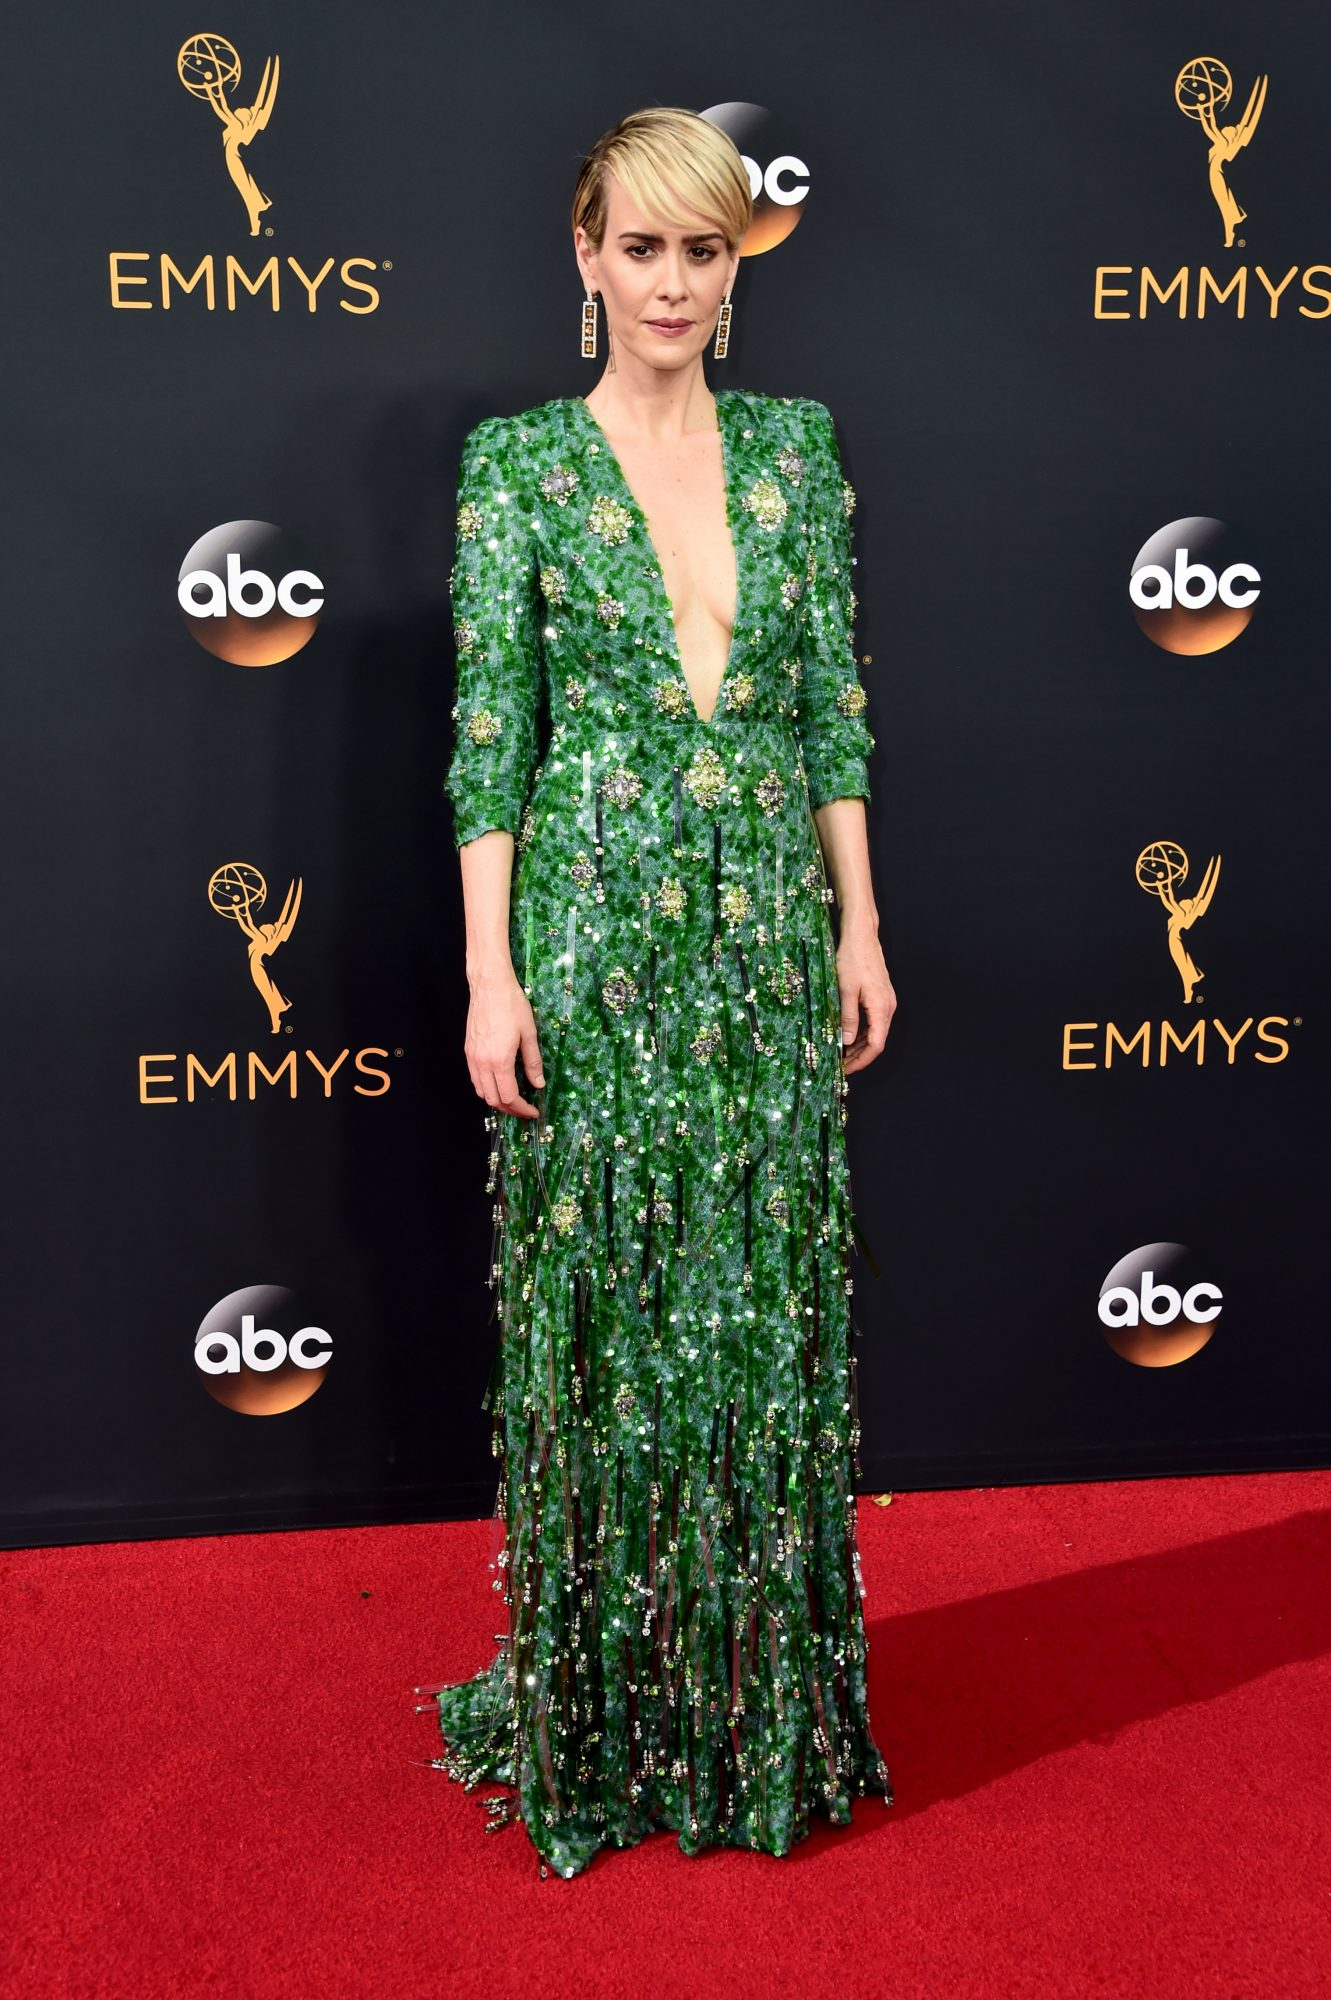 sarah paulson emmy awards prada gown, best emmy awards red carpet looks